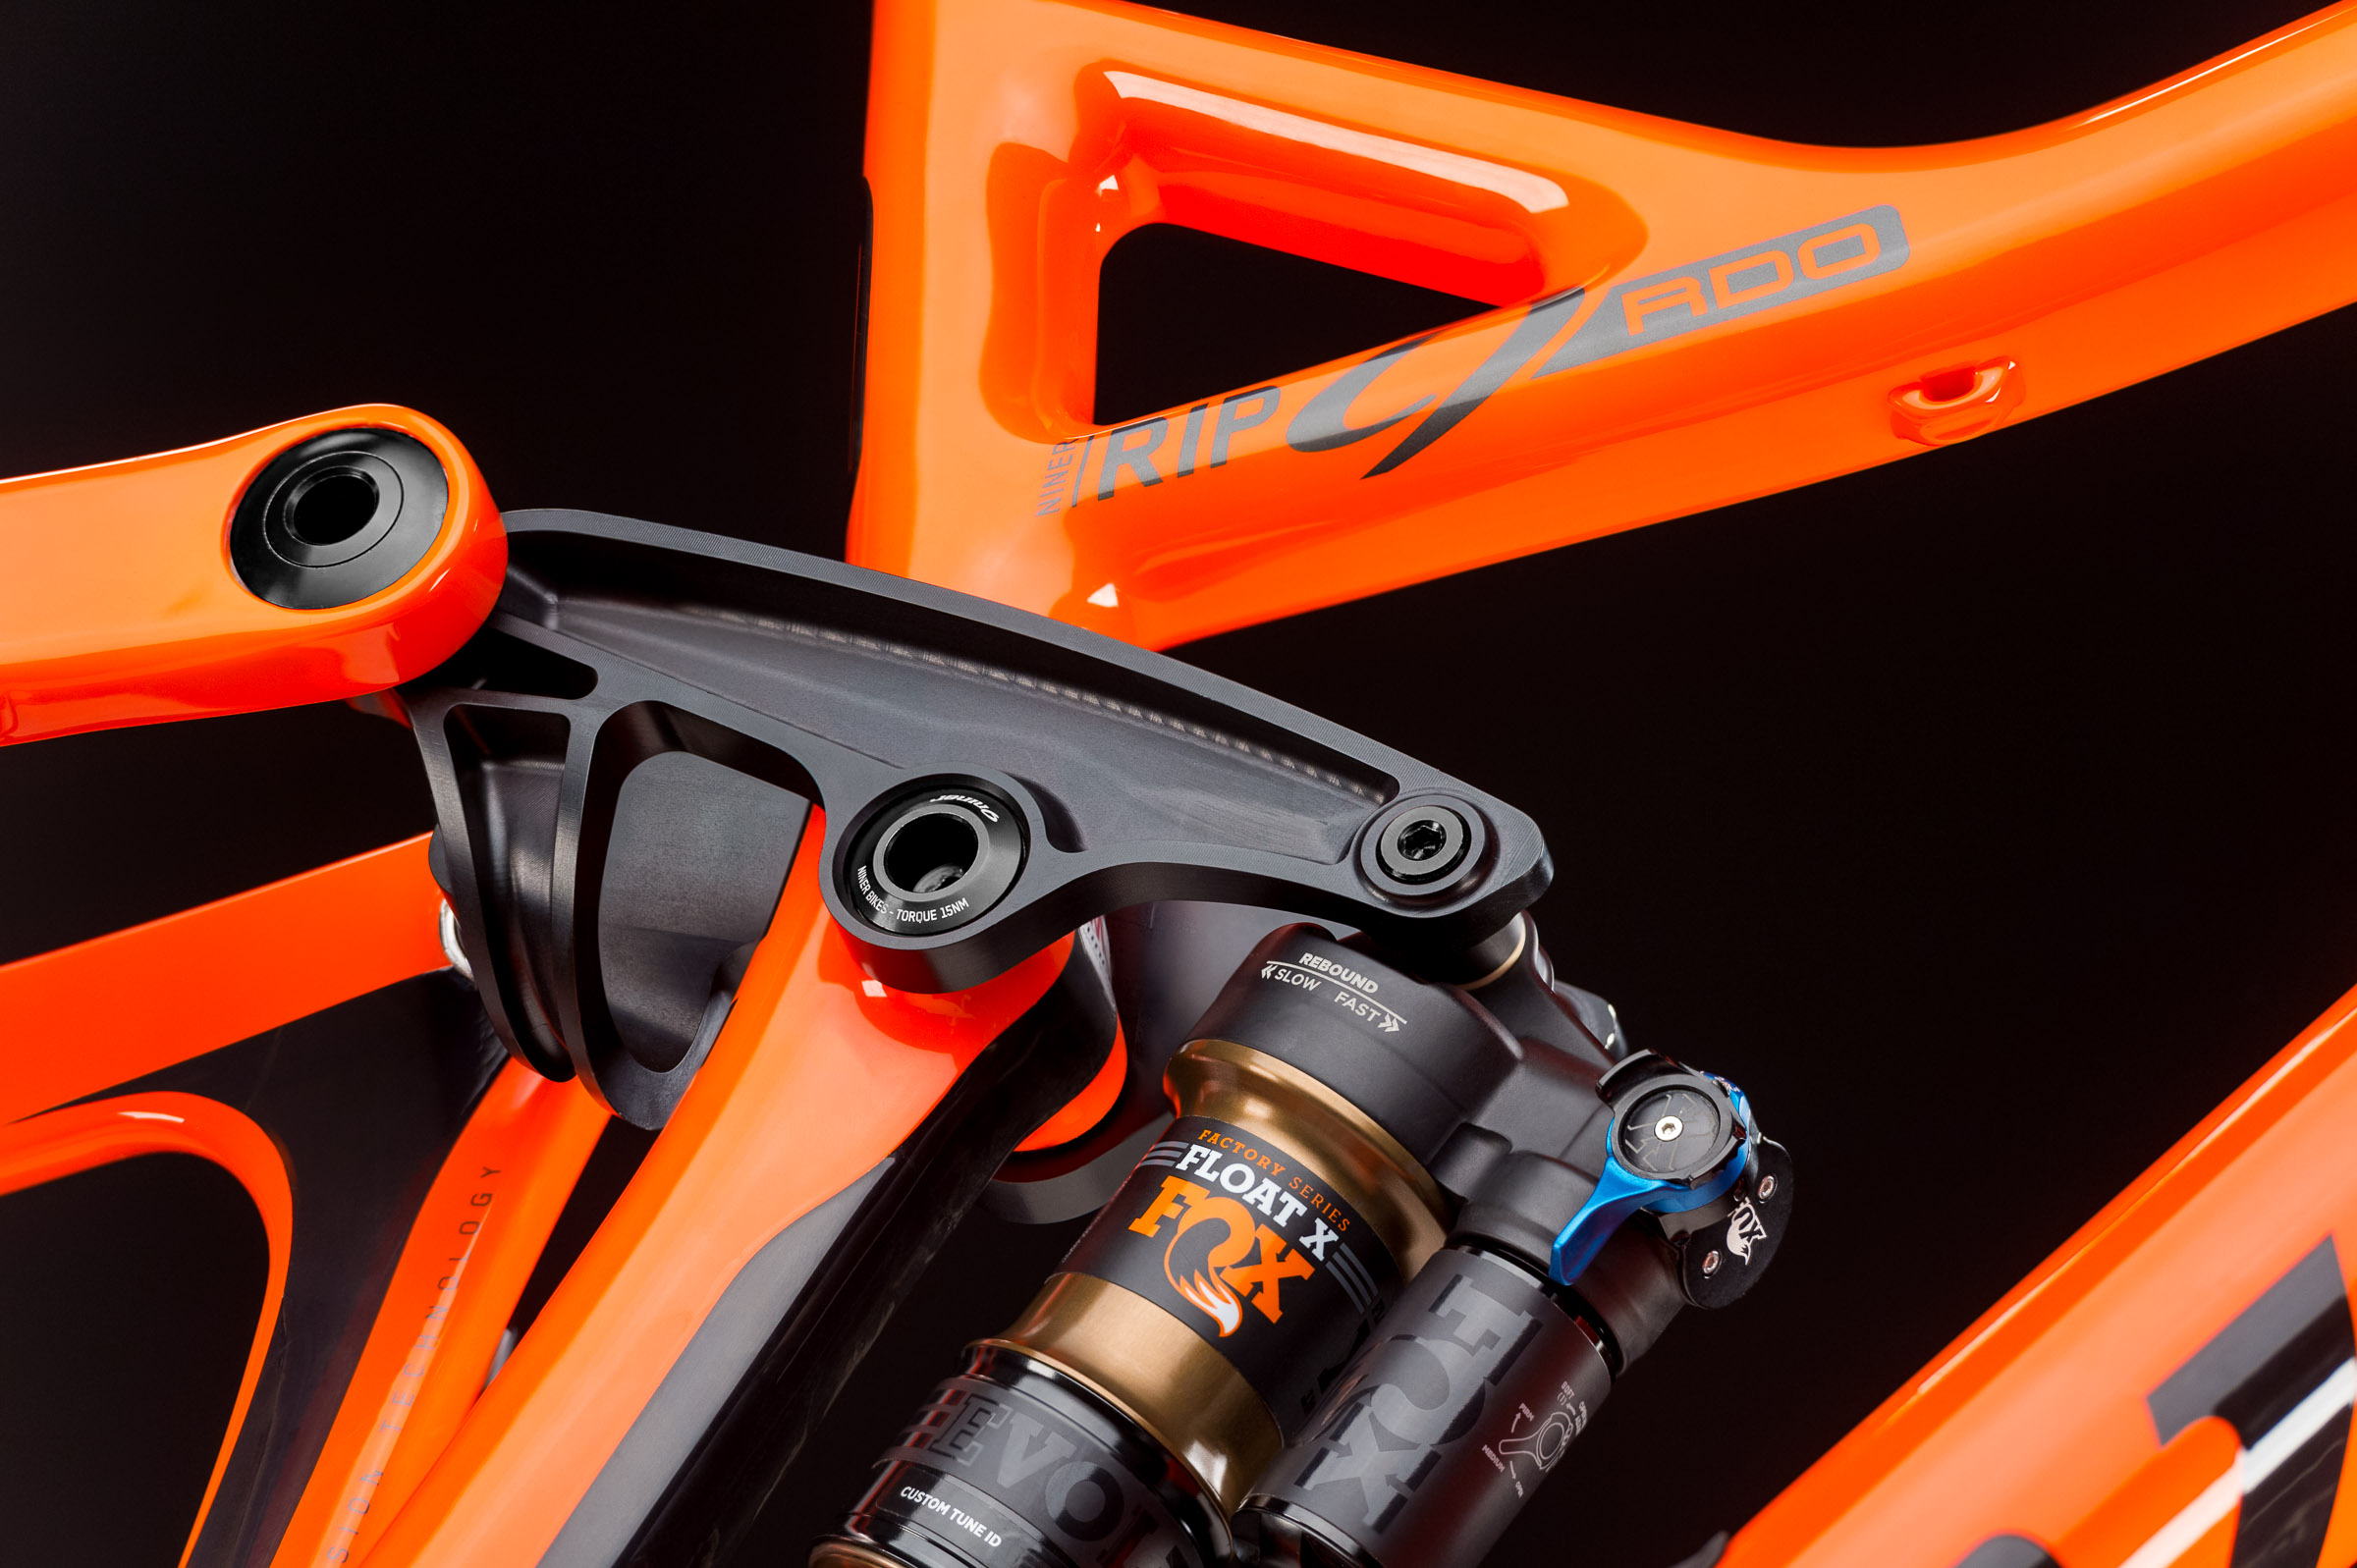 The RIP is built around Niner's patented Constantly Varying Arc (CVA) suspension, which is designed to remain fully active at all times. The system harnesses chain tension to counteract squat and bob, and the pair of linkages rotate in opposite directions allowing them to react to both pedaling and terrain inputs independently of each other.